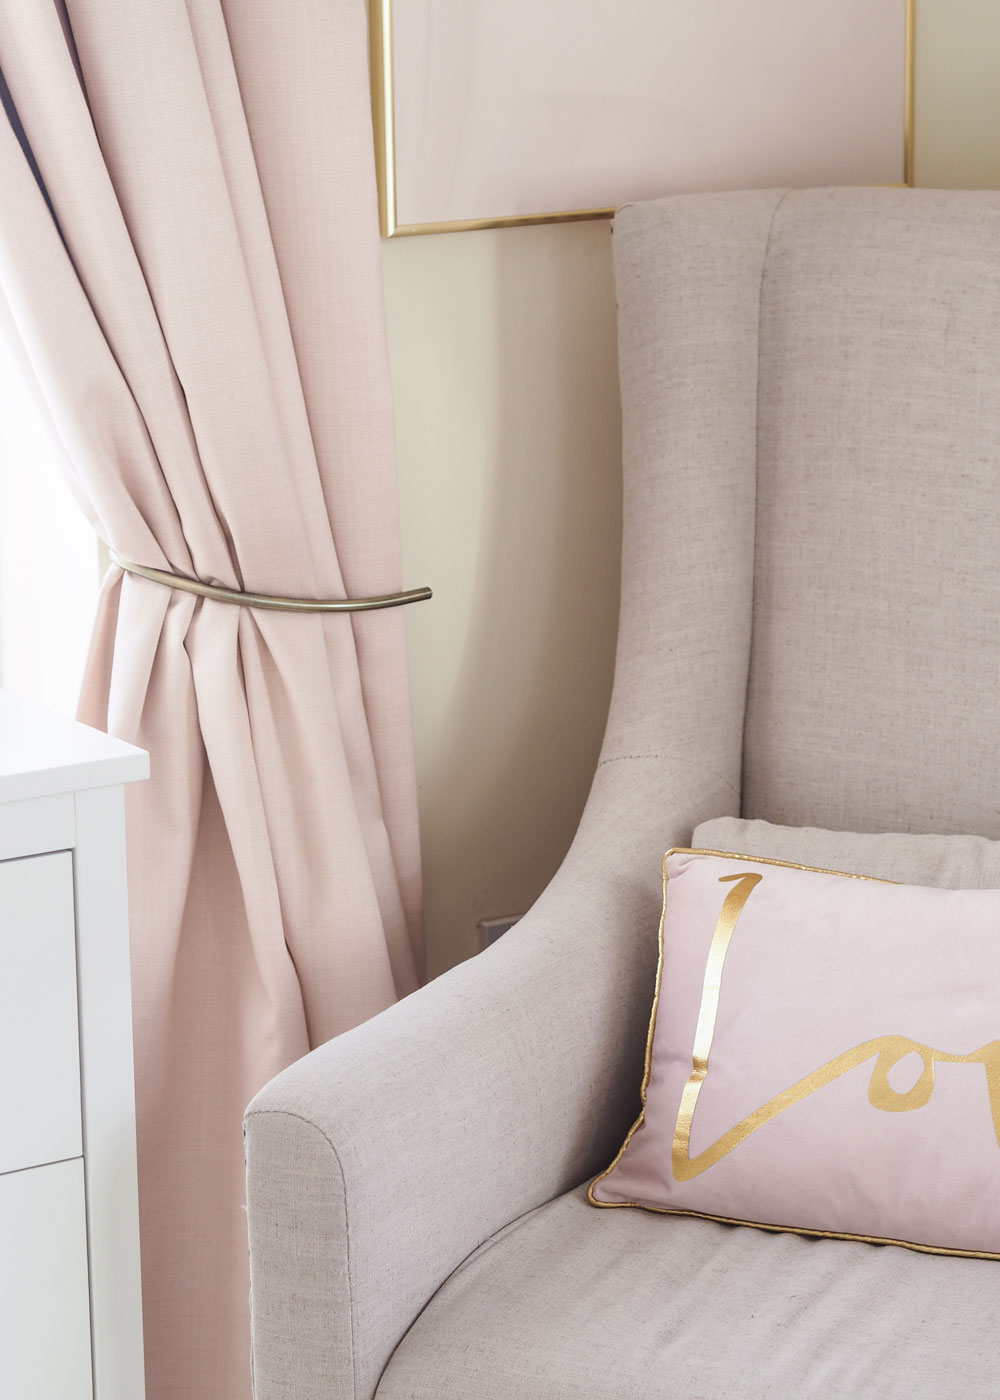 Today I'm partnering with blind and curtain specialist, Hillary's, to show you how to create an urban glamour look in your own home.